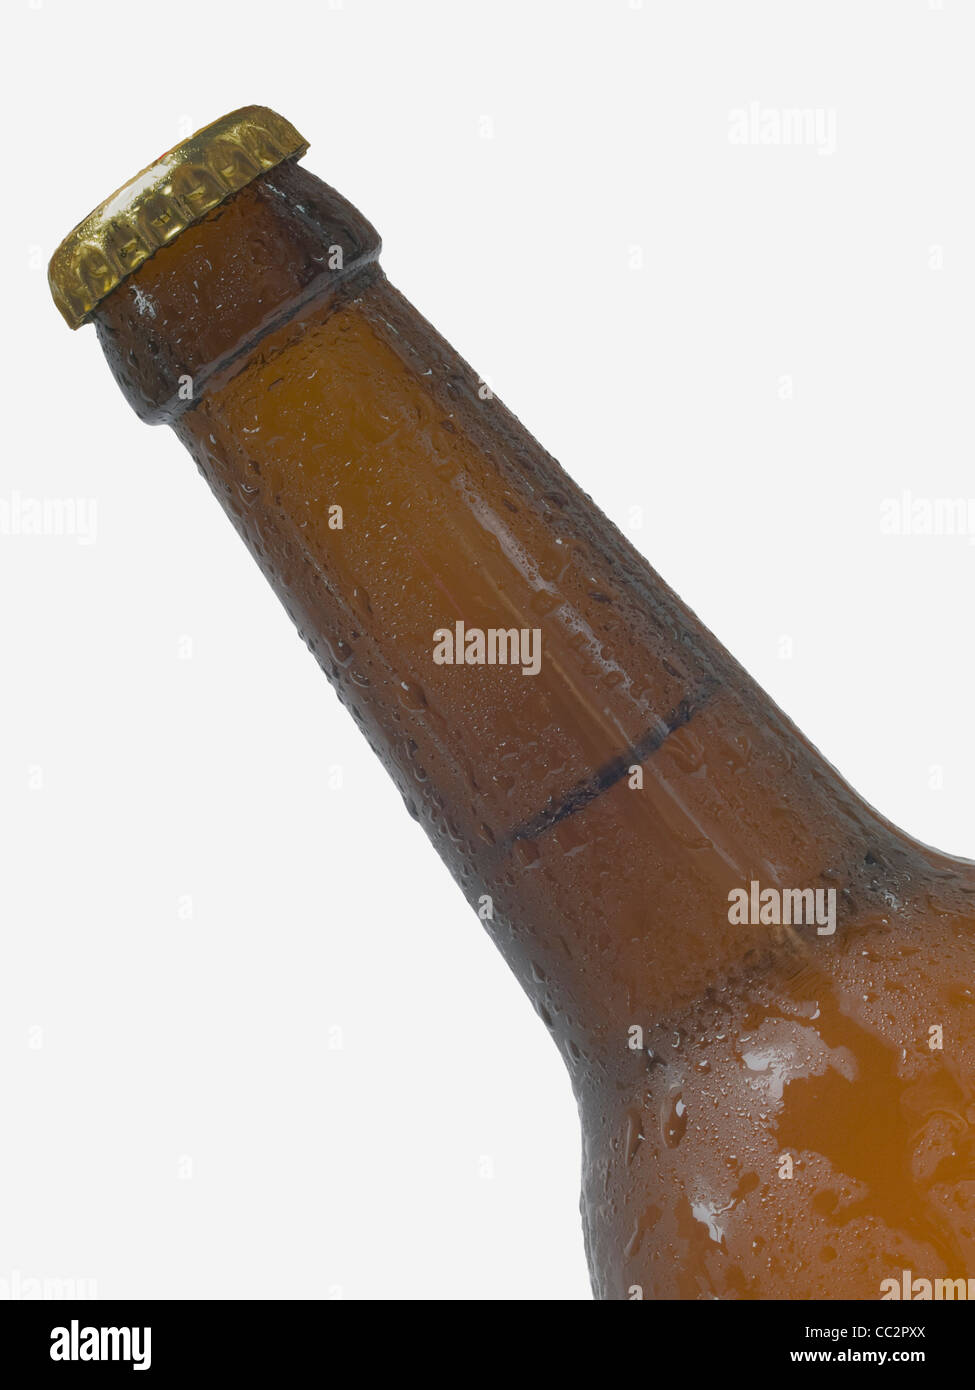 Detail photo of a beer bottle with drops of water - Stock Image